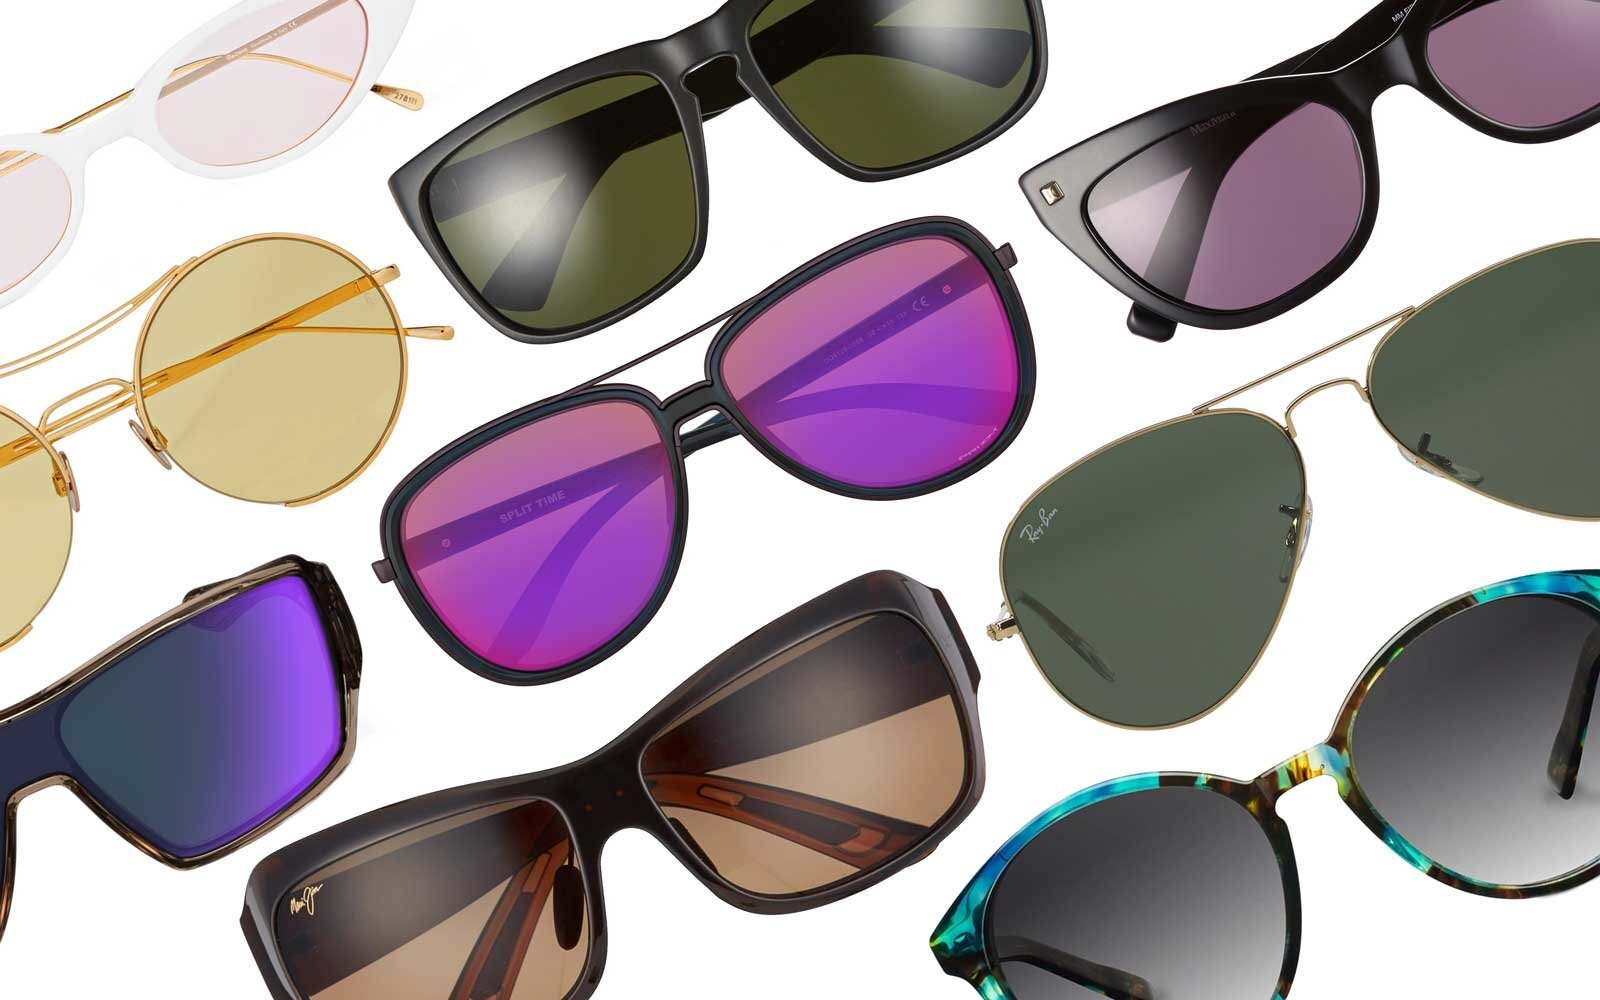 d3e9cfa5e3 19 Pairs of Sunglasses for Your Next Adventure